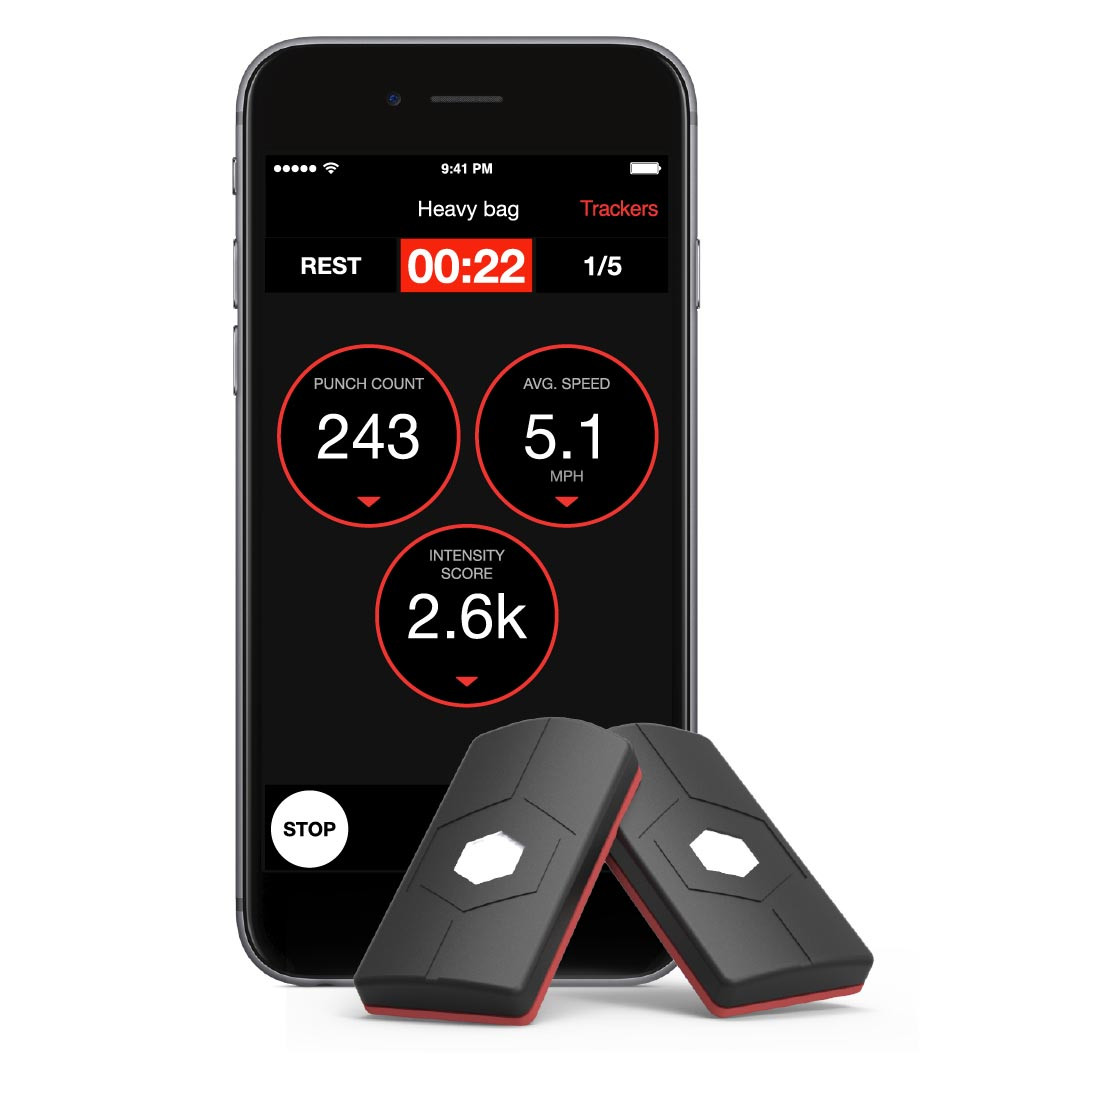 HYKSO Punch Trackers Boxing Training App